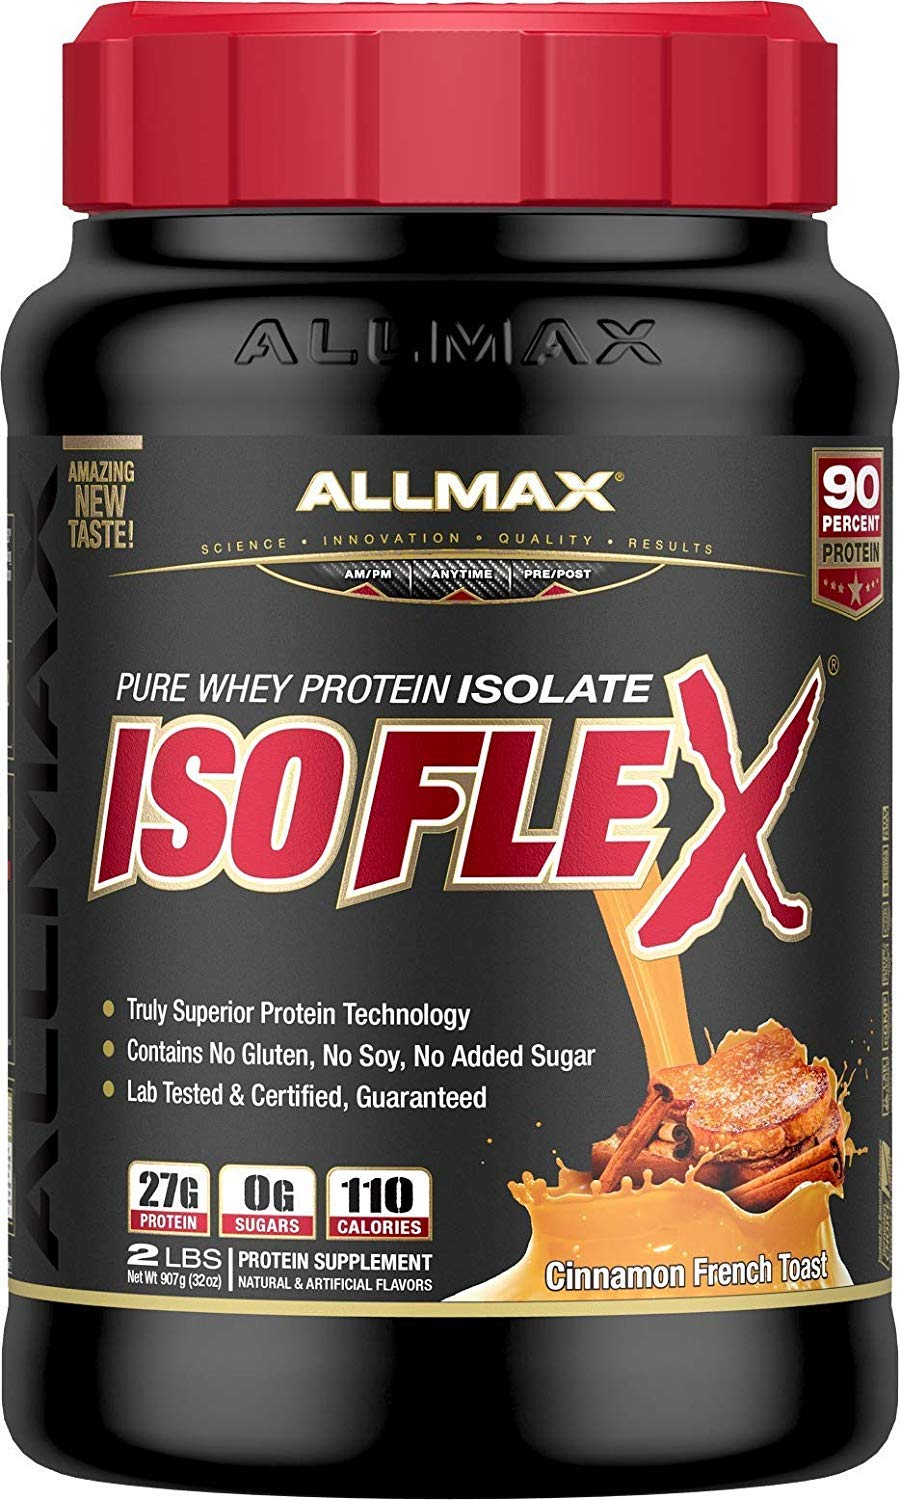 ALLMAX Nutrition Isoflex 100% Pure Whey Protein Isolate, Cinnamon French Toast, 2 lbs